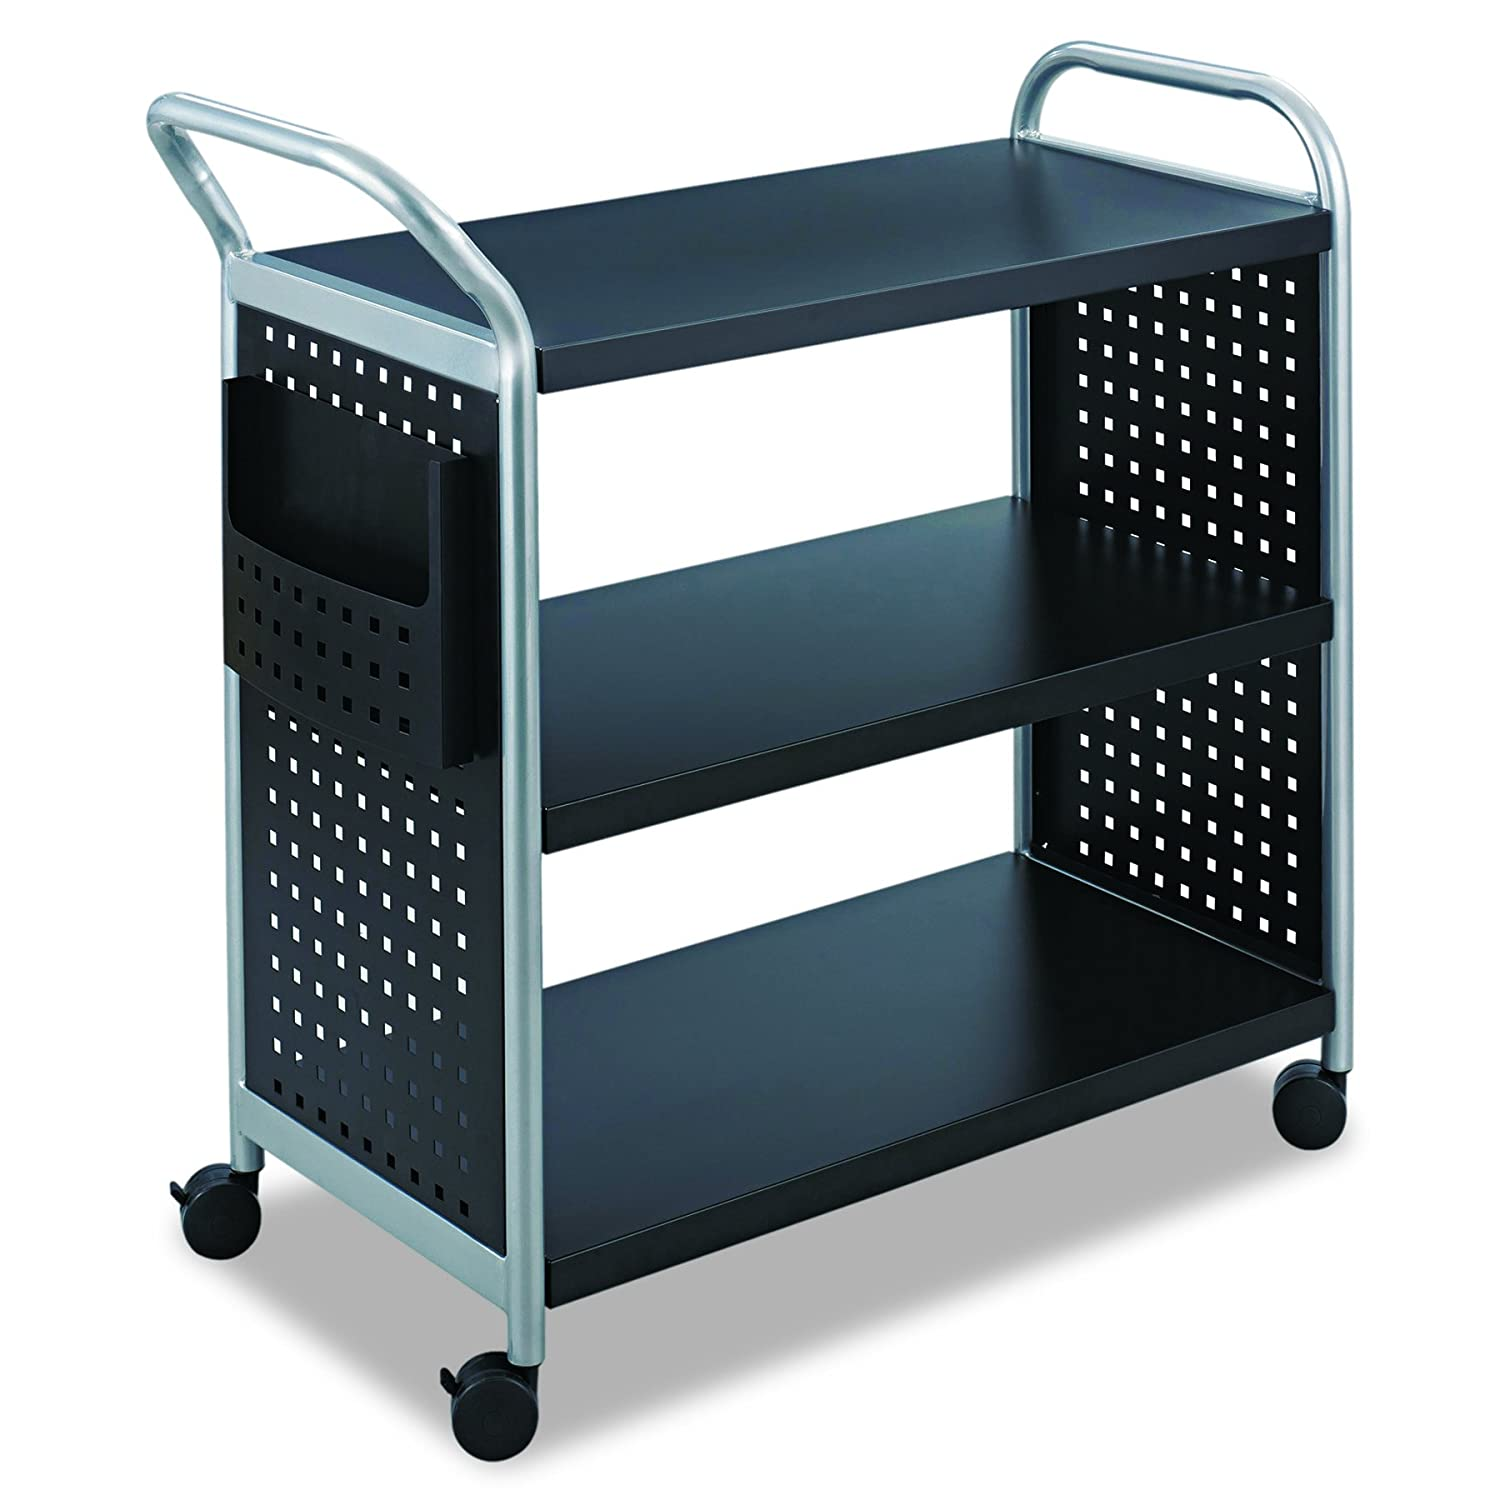 Safco Products 5339BL Scoot Steel Utility Cart, 3 Shelf, Silver Black